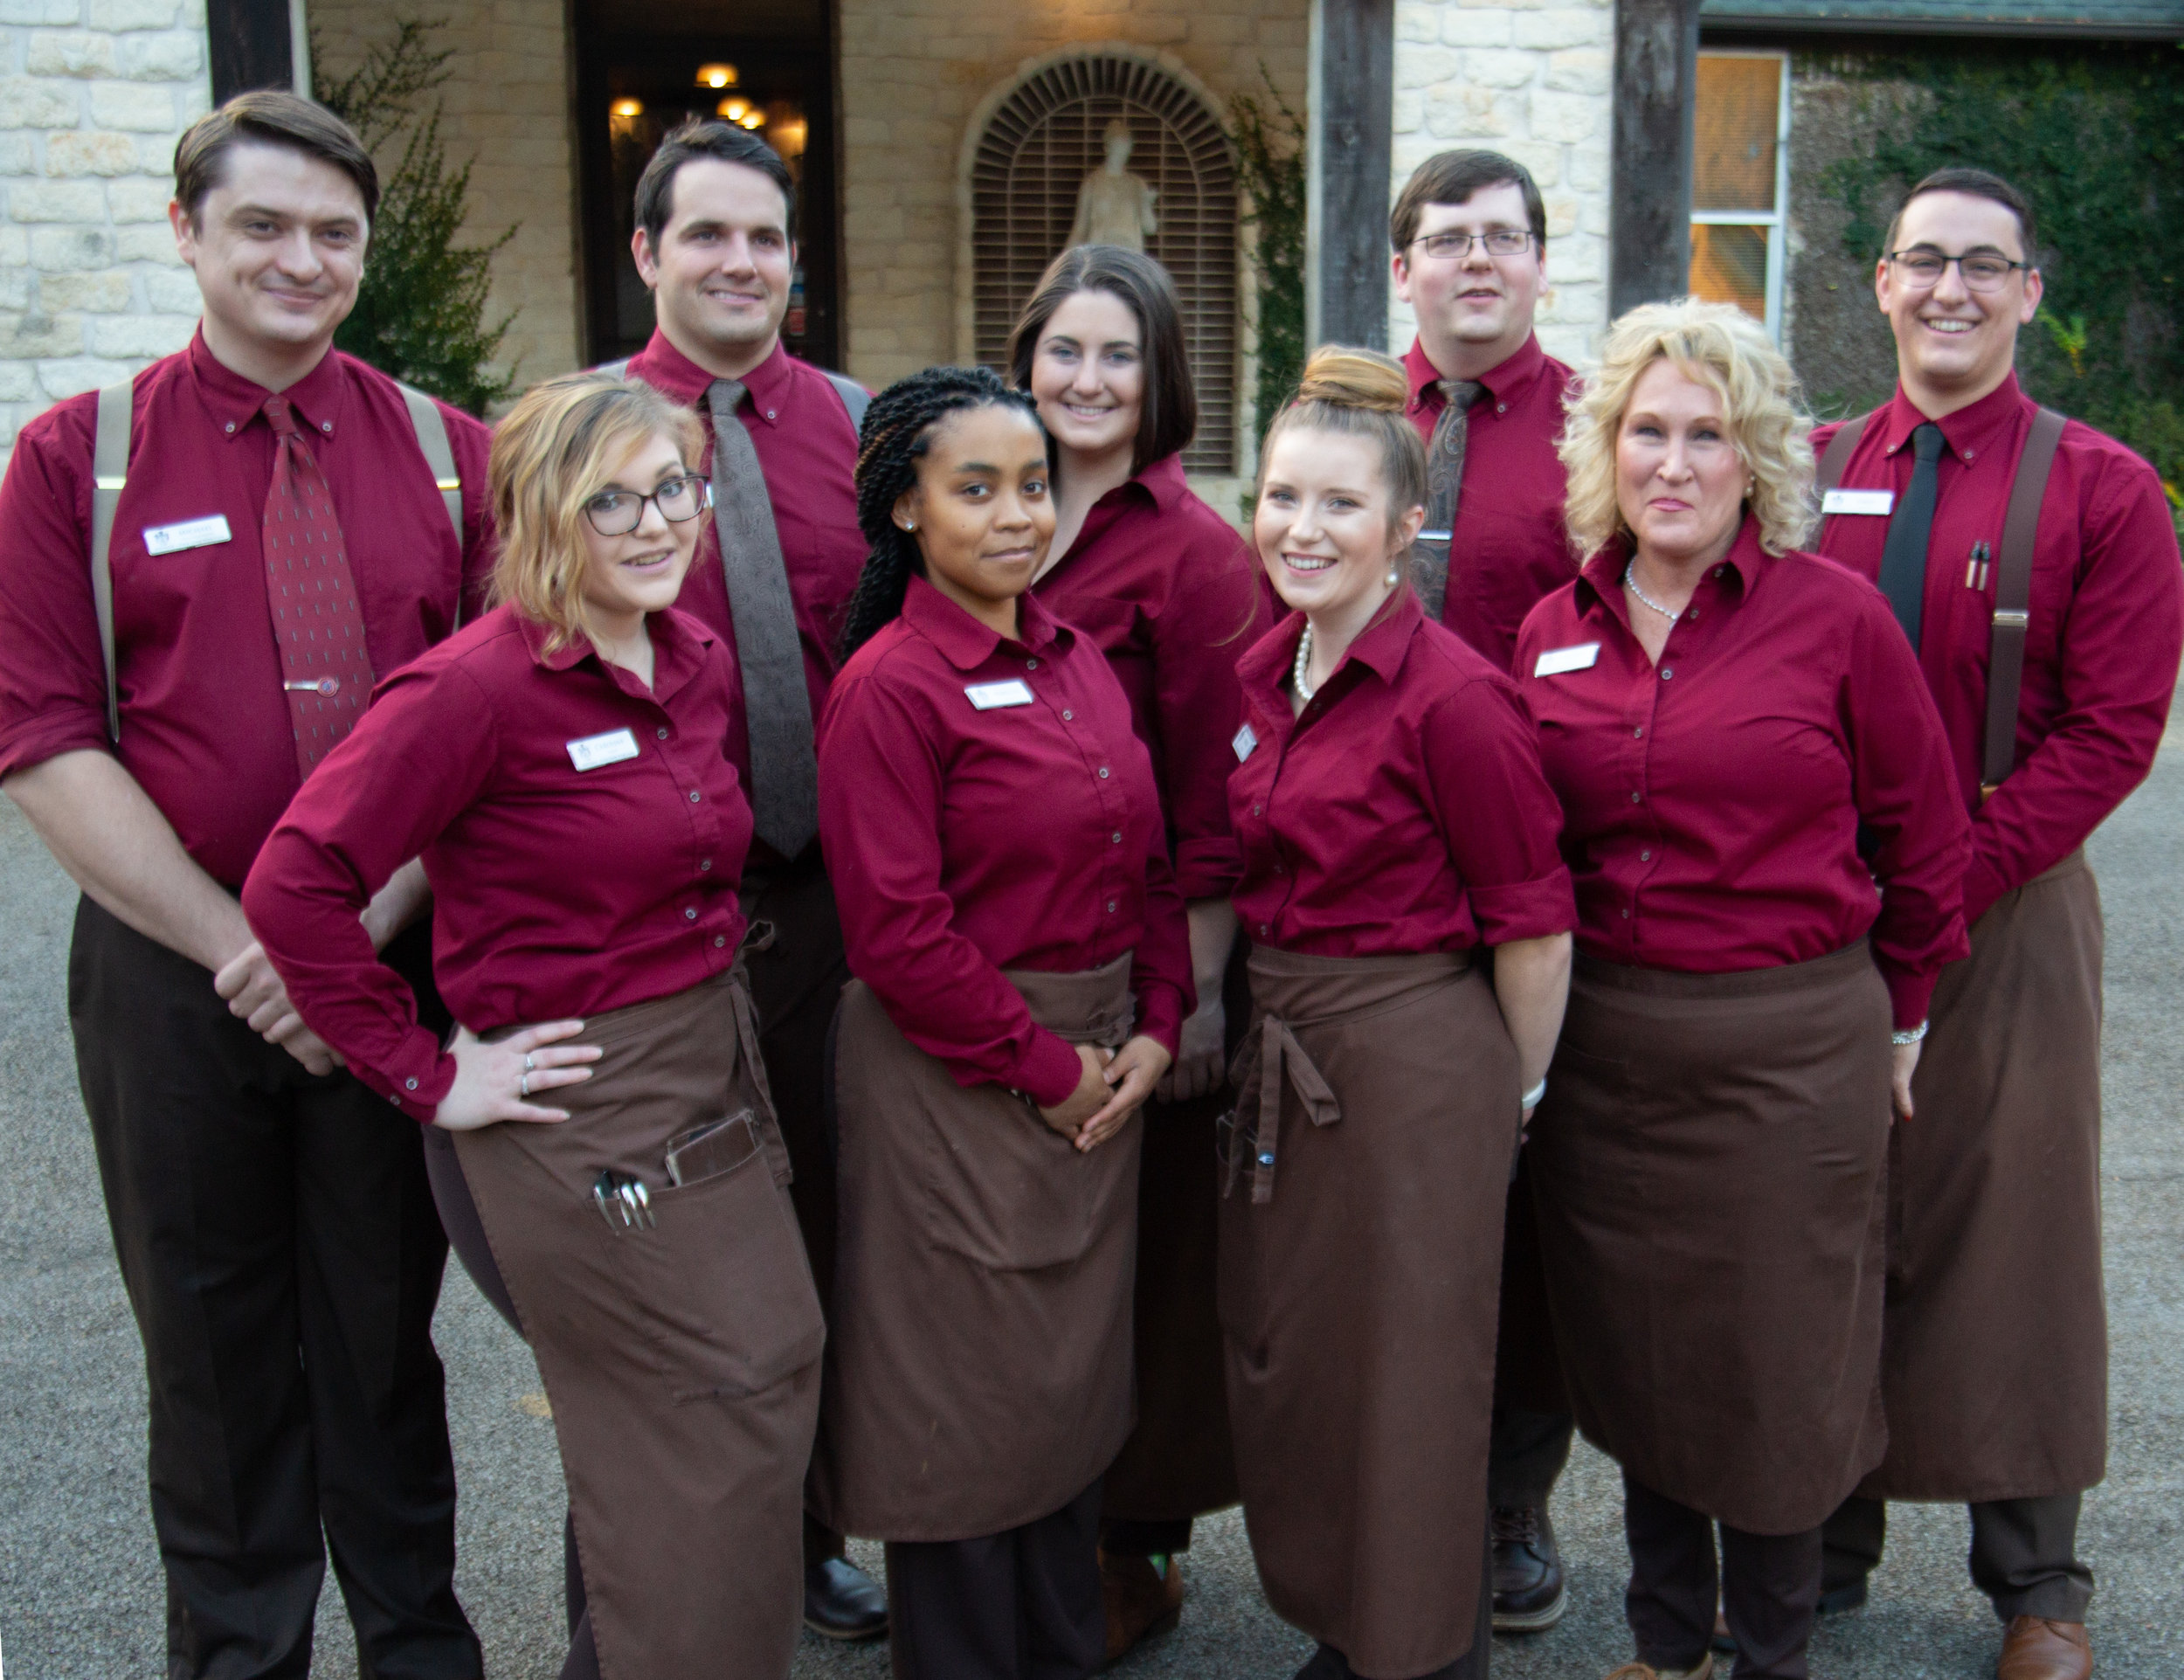 The beautiful service staff at the restaurant.